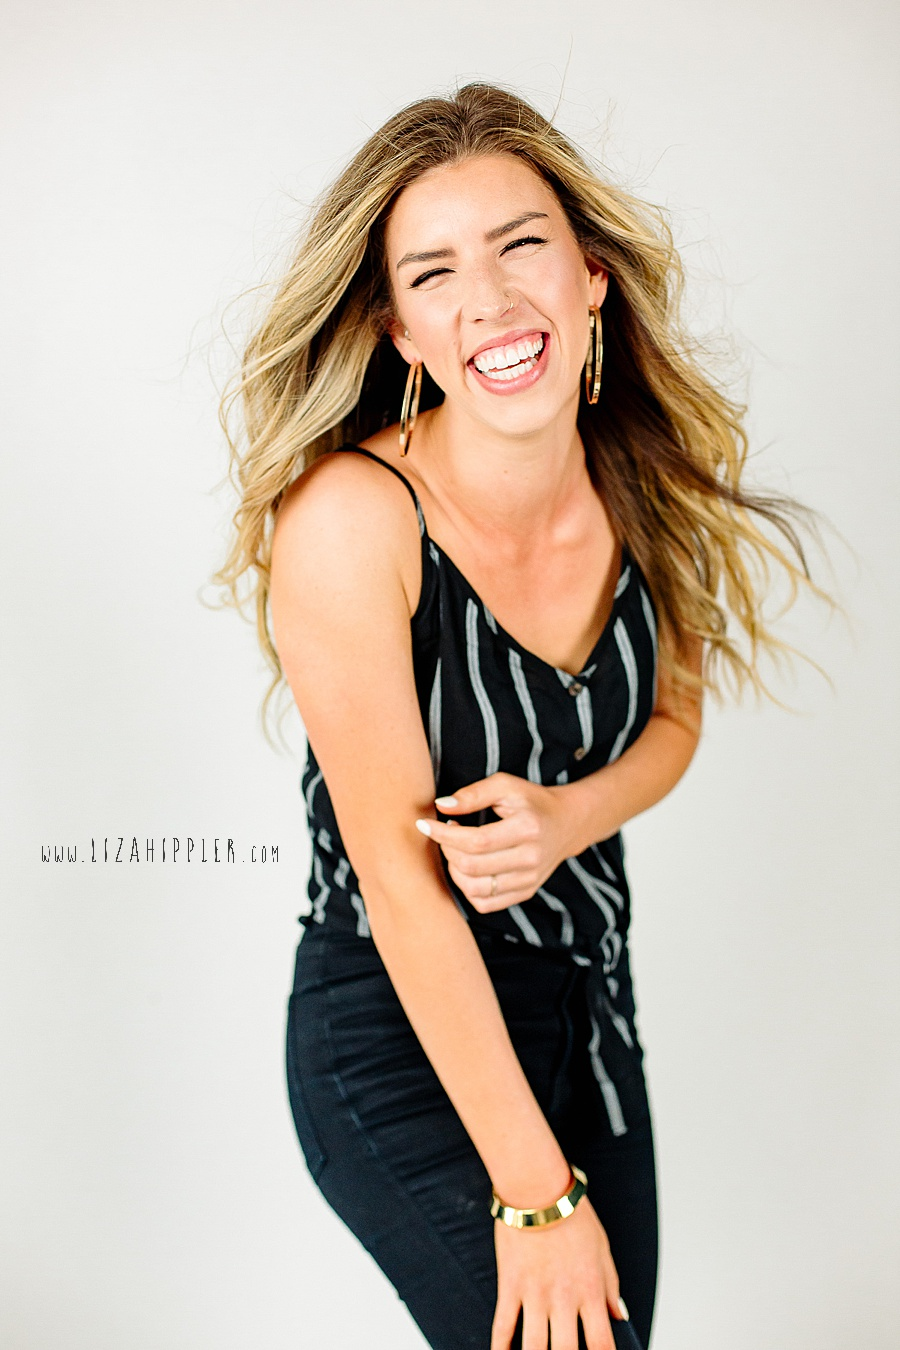 fun and personable work n play headshot blonde woman white background